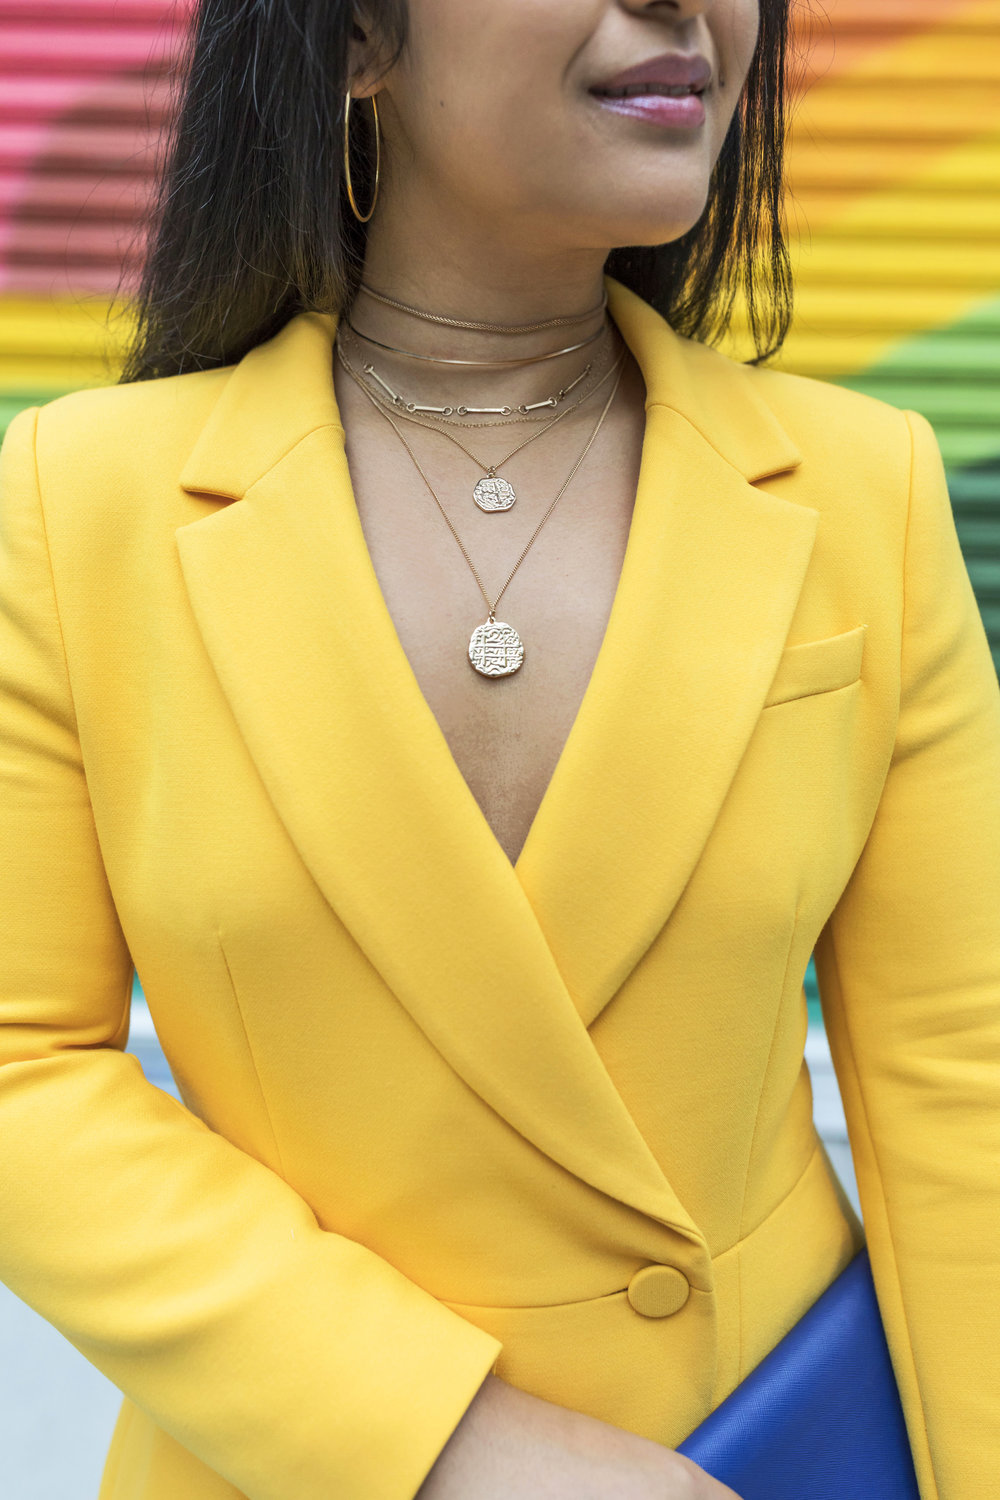 Krity S x Yellow Suit8.jpg